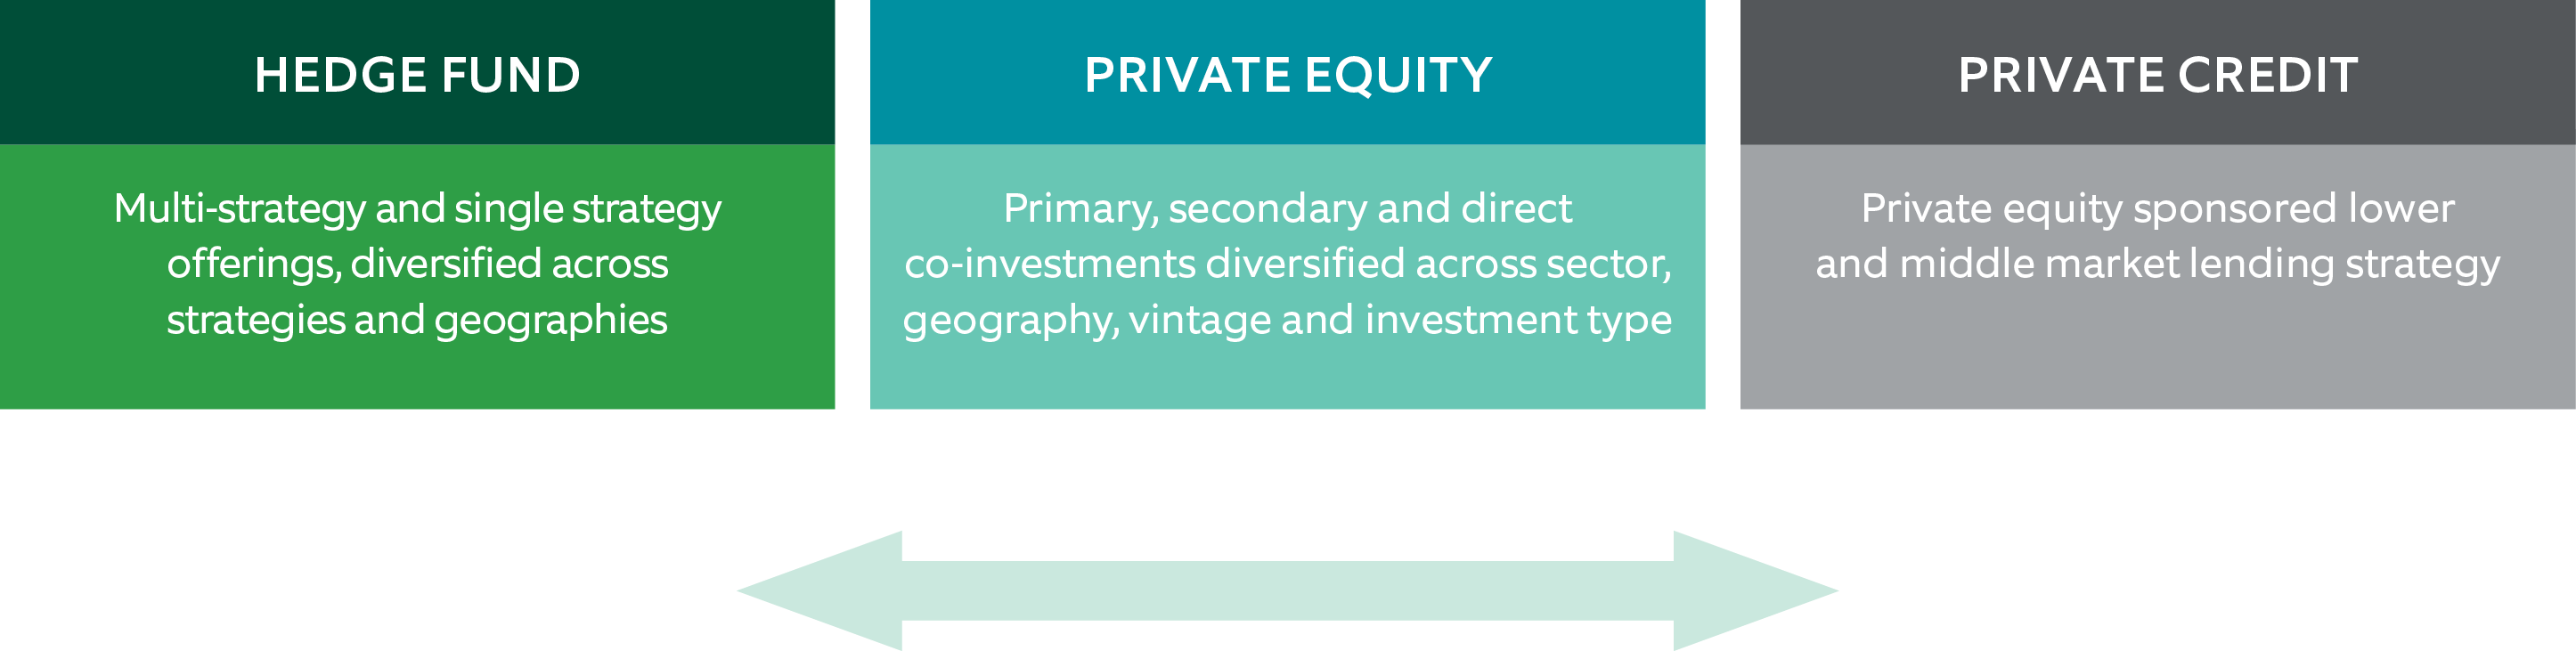 Chart               of investment solutions across the spectrum of hedge funds and private equity investments